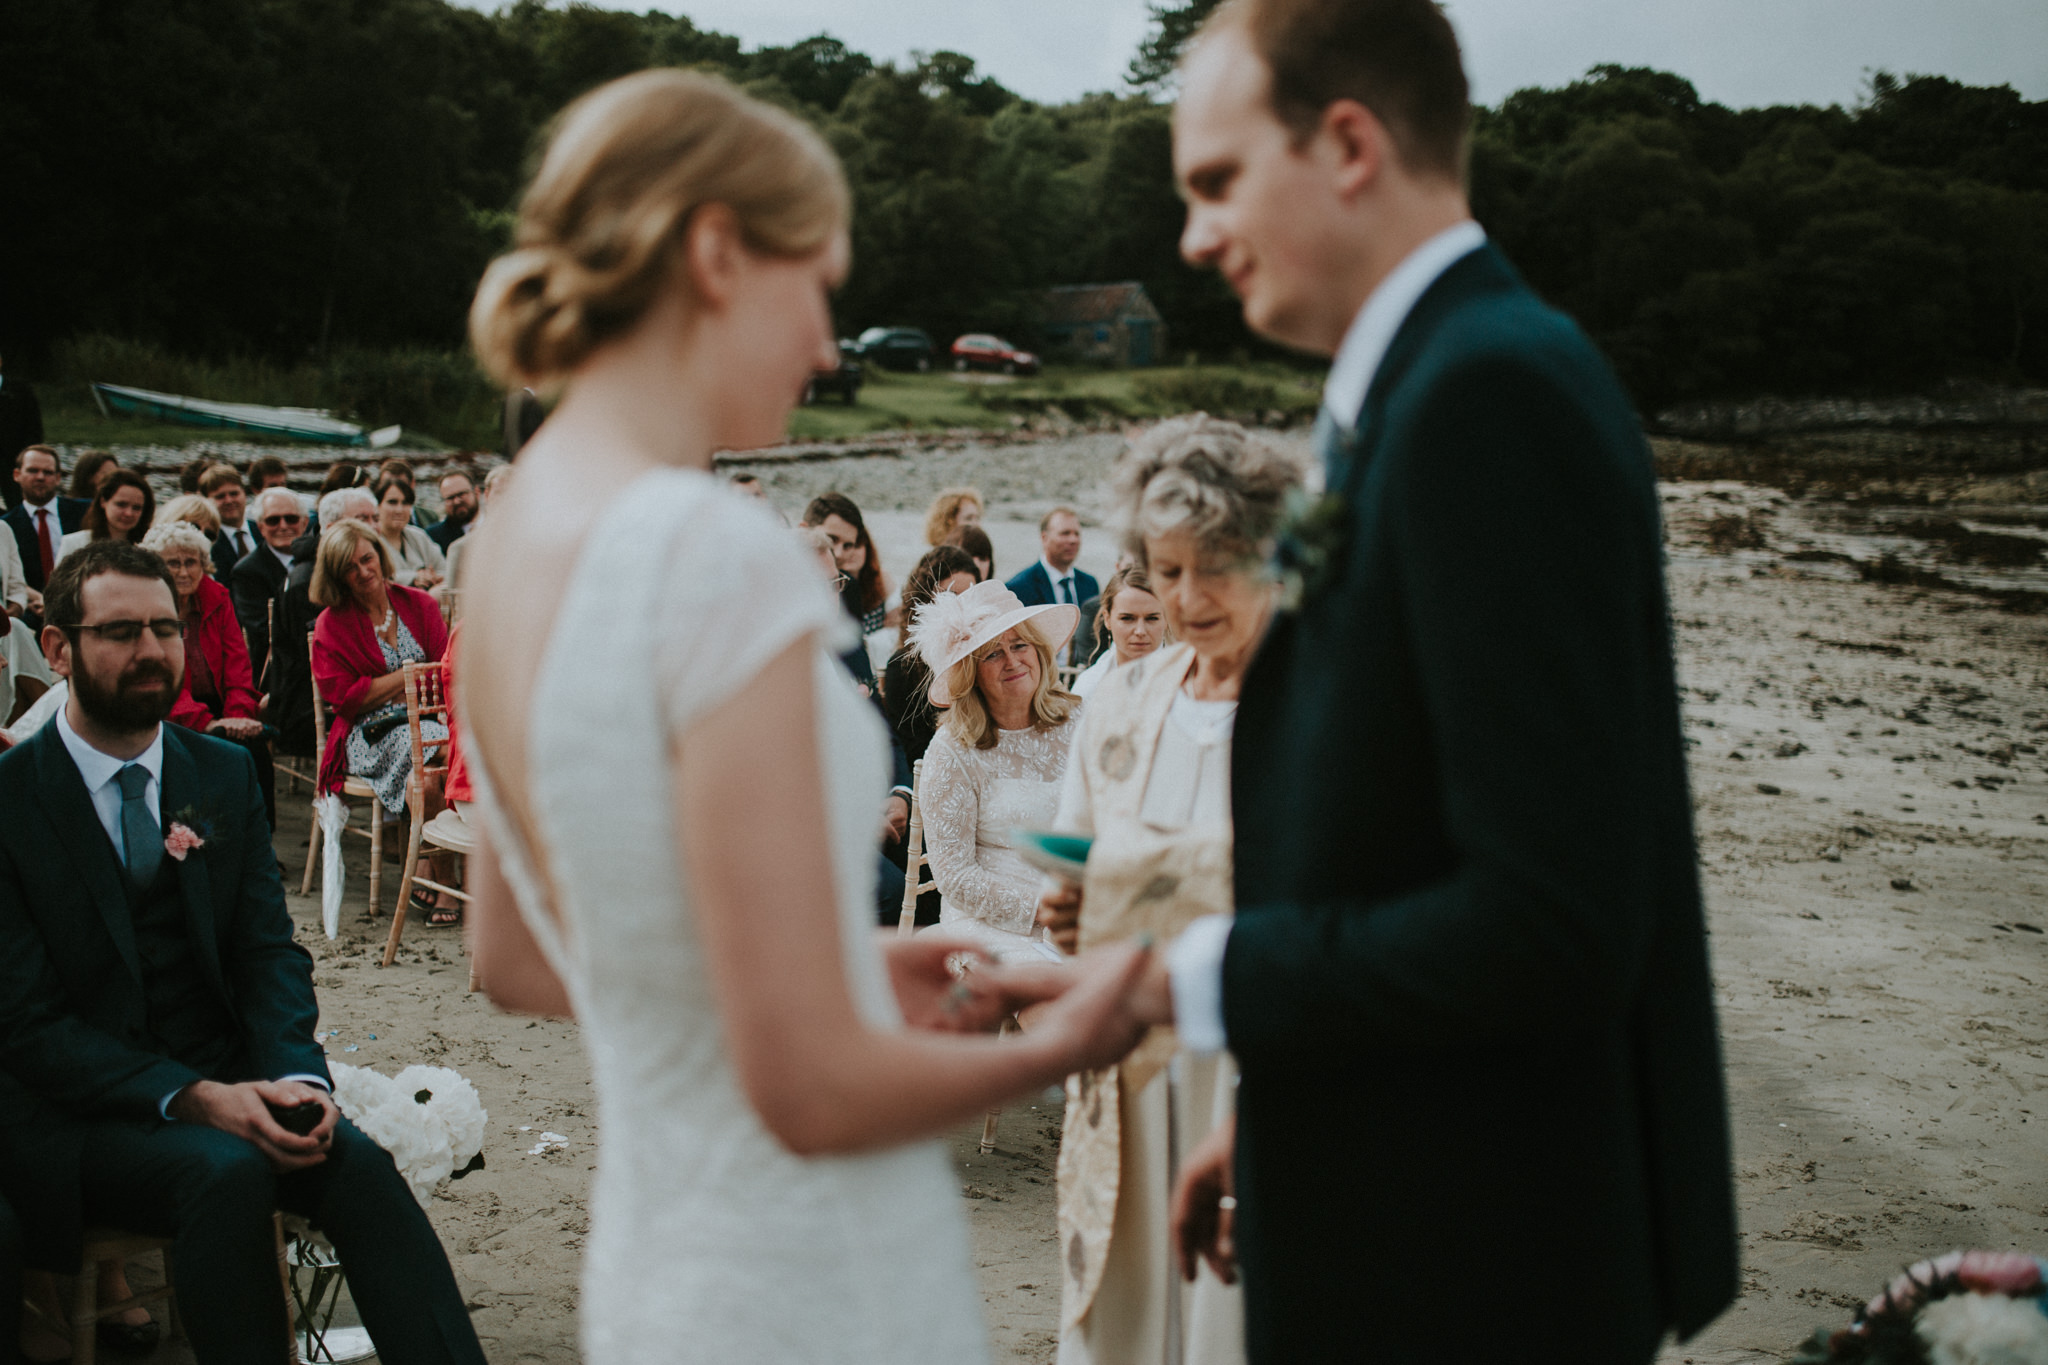 The wedding couple is standing in front of their guests and is holding hands.